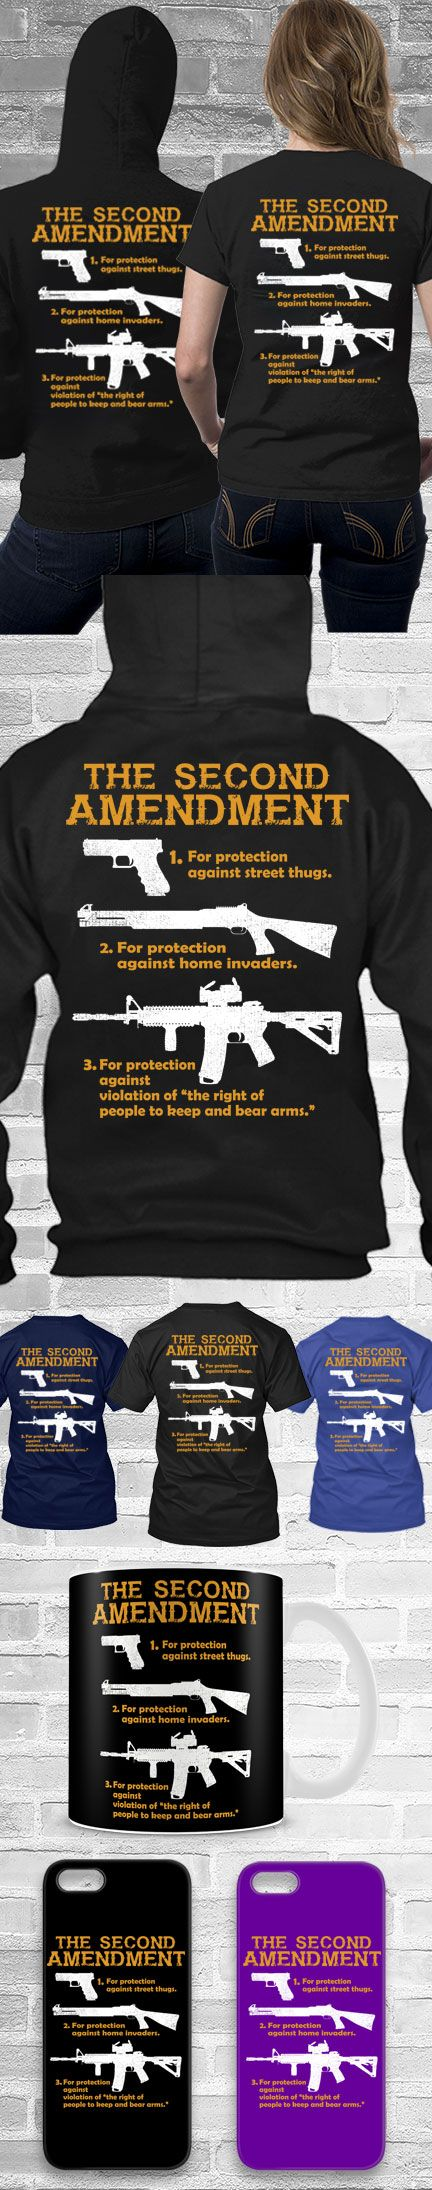 The Second Amendment Shirts! Click The Image To Buy It Now or Tag Someone You Want To Buy This For.  #secondament